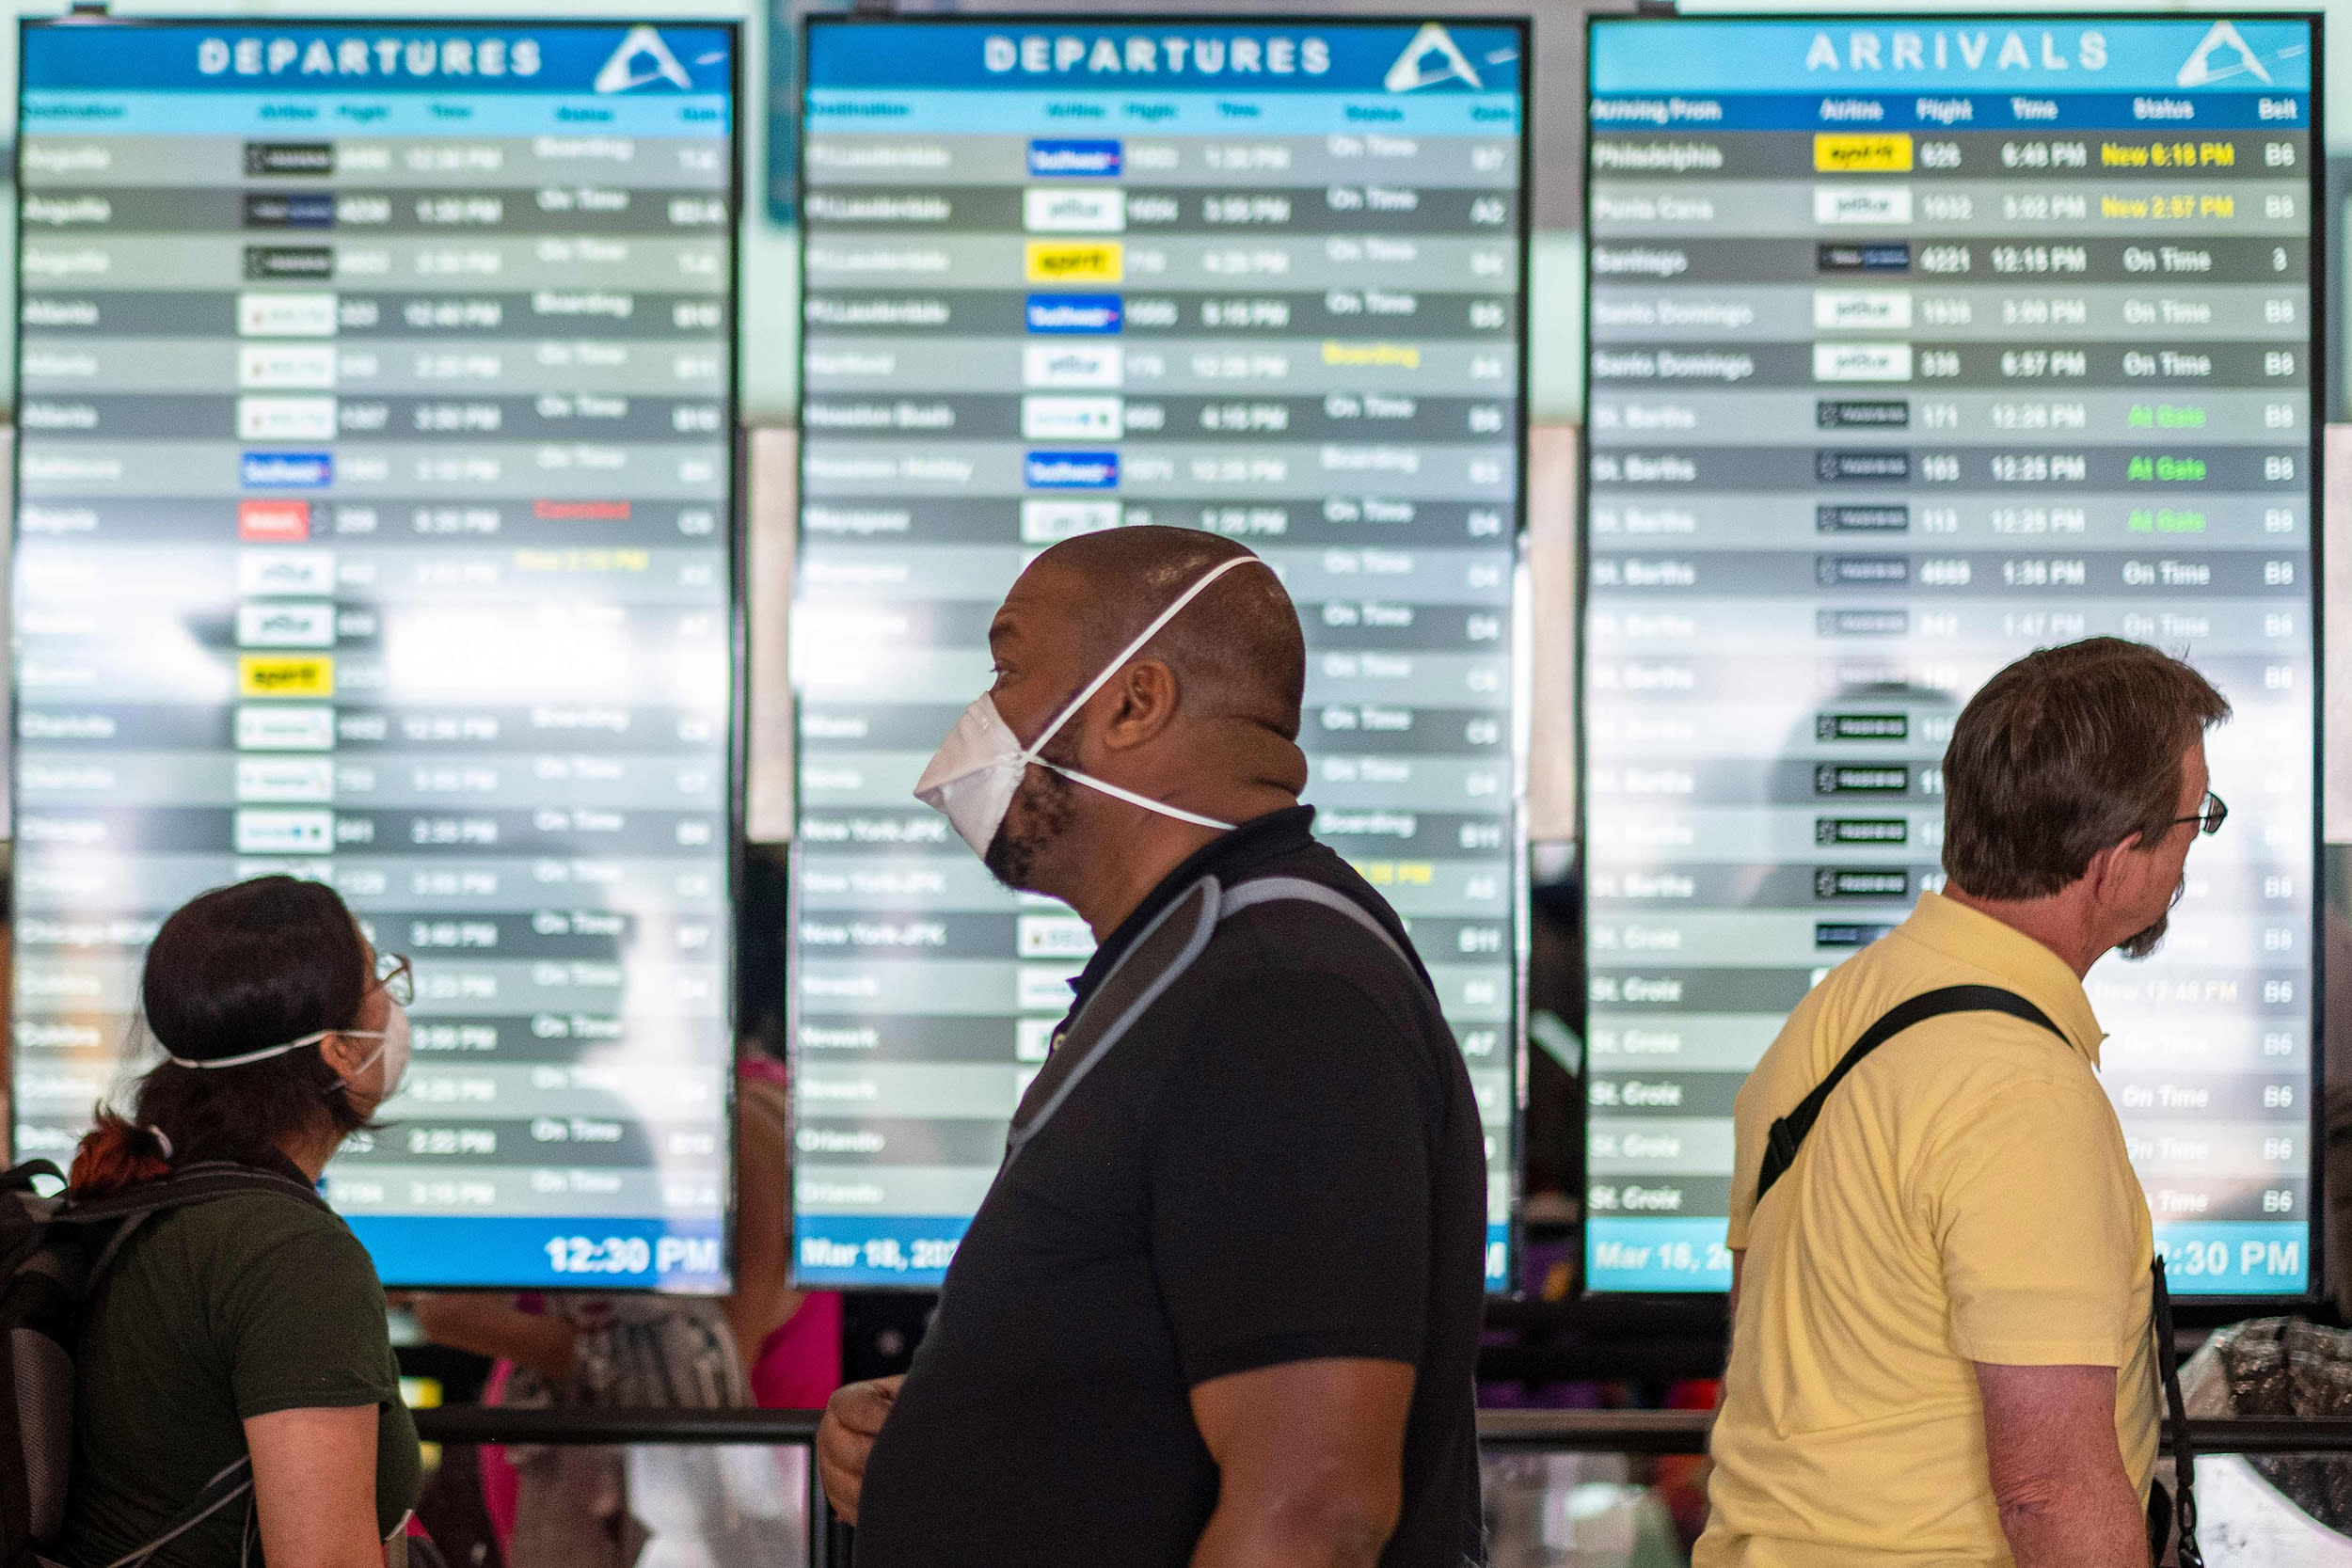 Puerto Rico wanted tourists, but as coronavirus spikes, it has changed plans